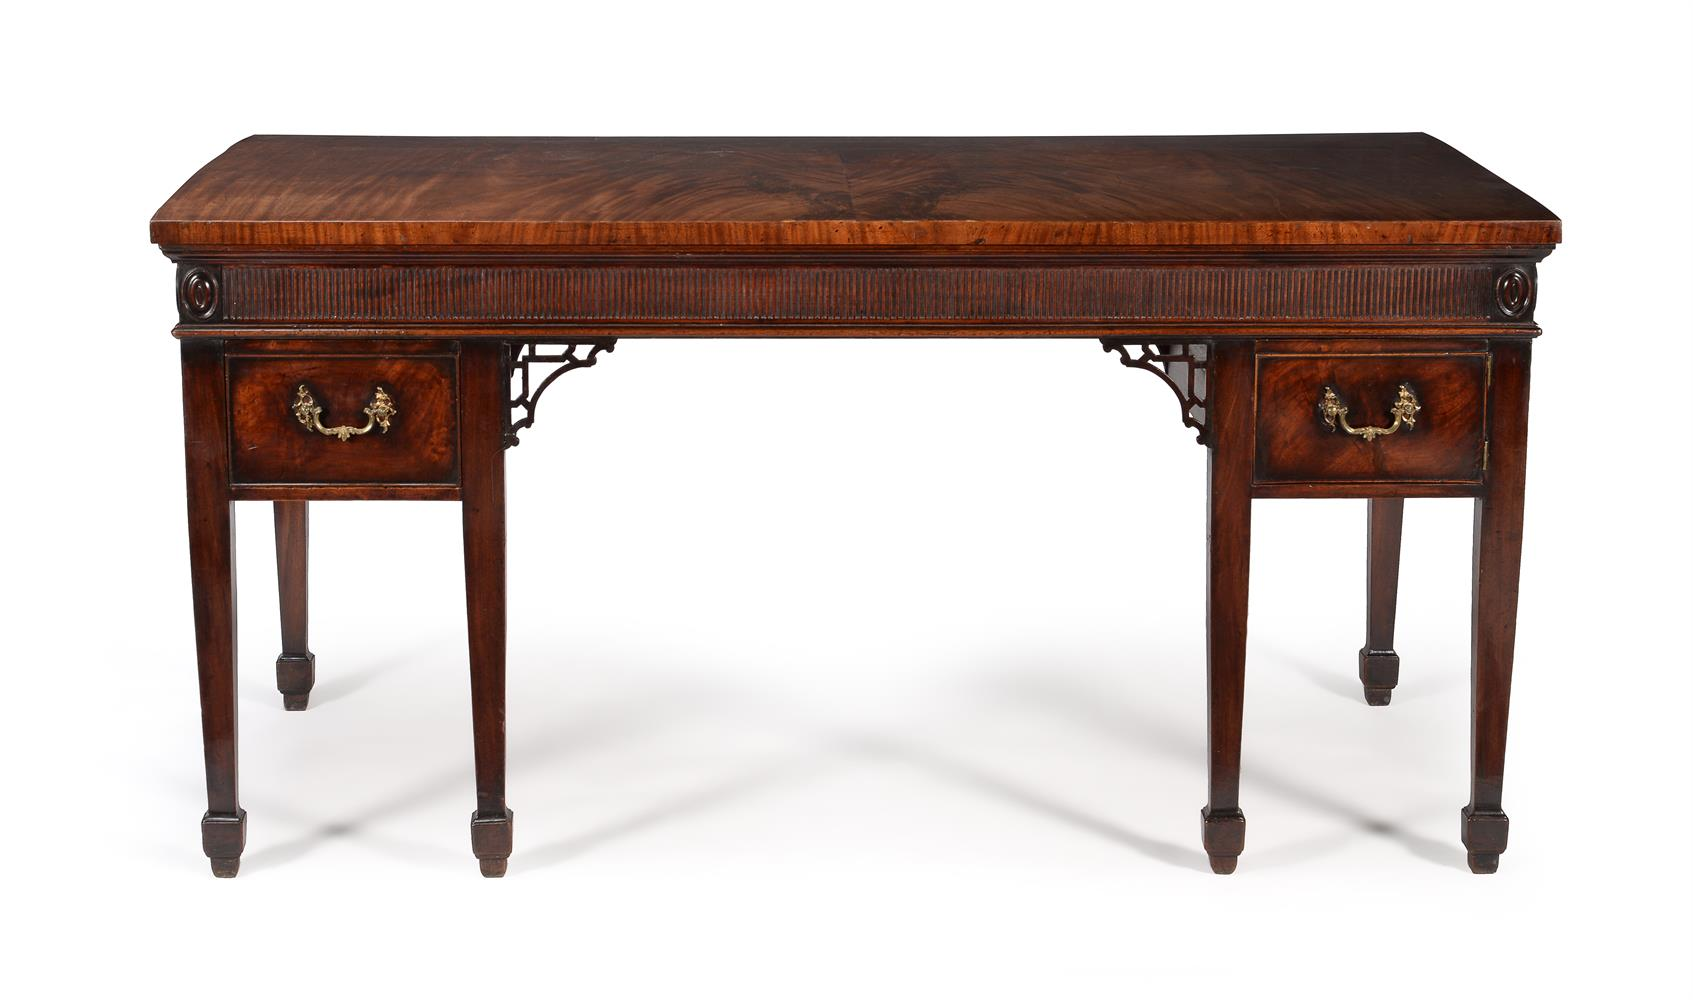 A GEORGE III MAHOGANY SERVING TABLE, CIRCA 1790 - Image 4 of 6